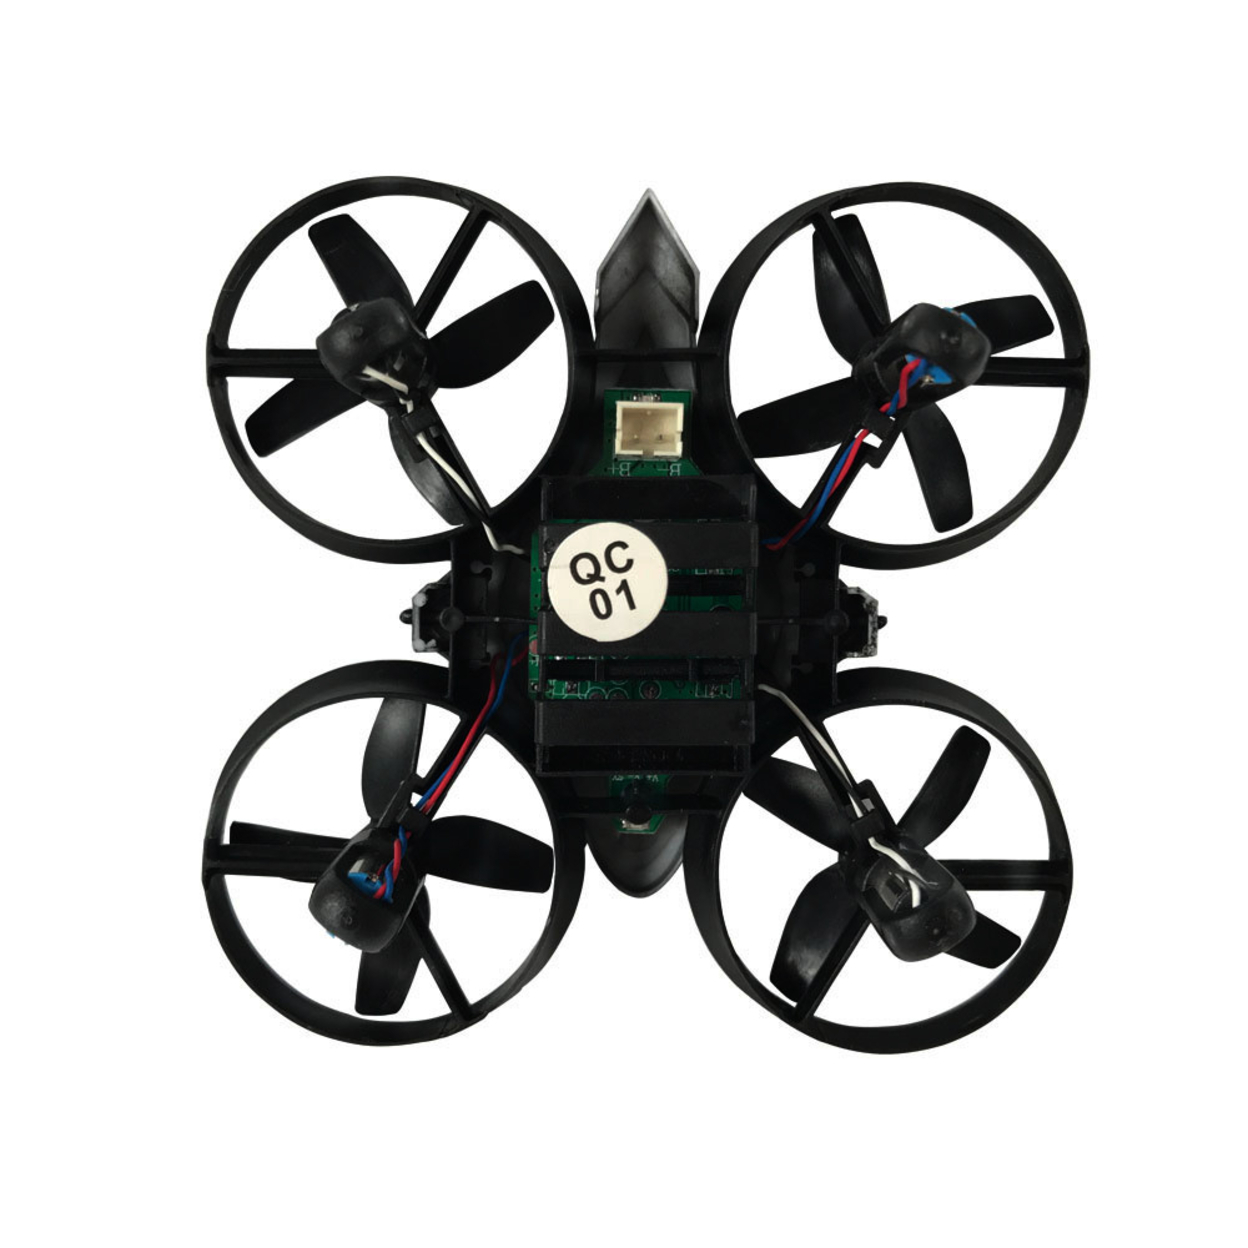 Yile S22 2.4ghz Mini 4ch 4-axis Quadcopter 3d Flips Drone All-inclusive Toy